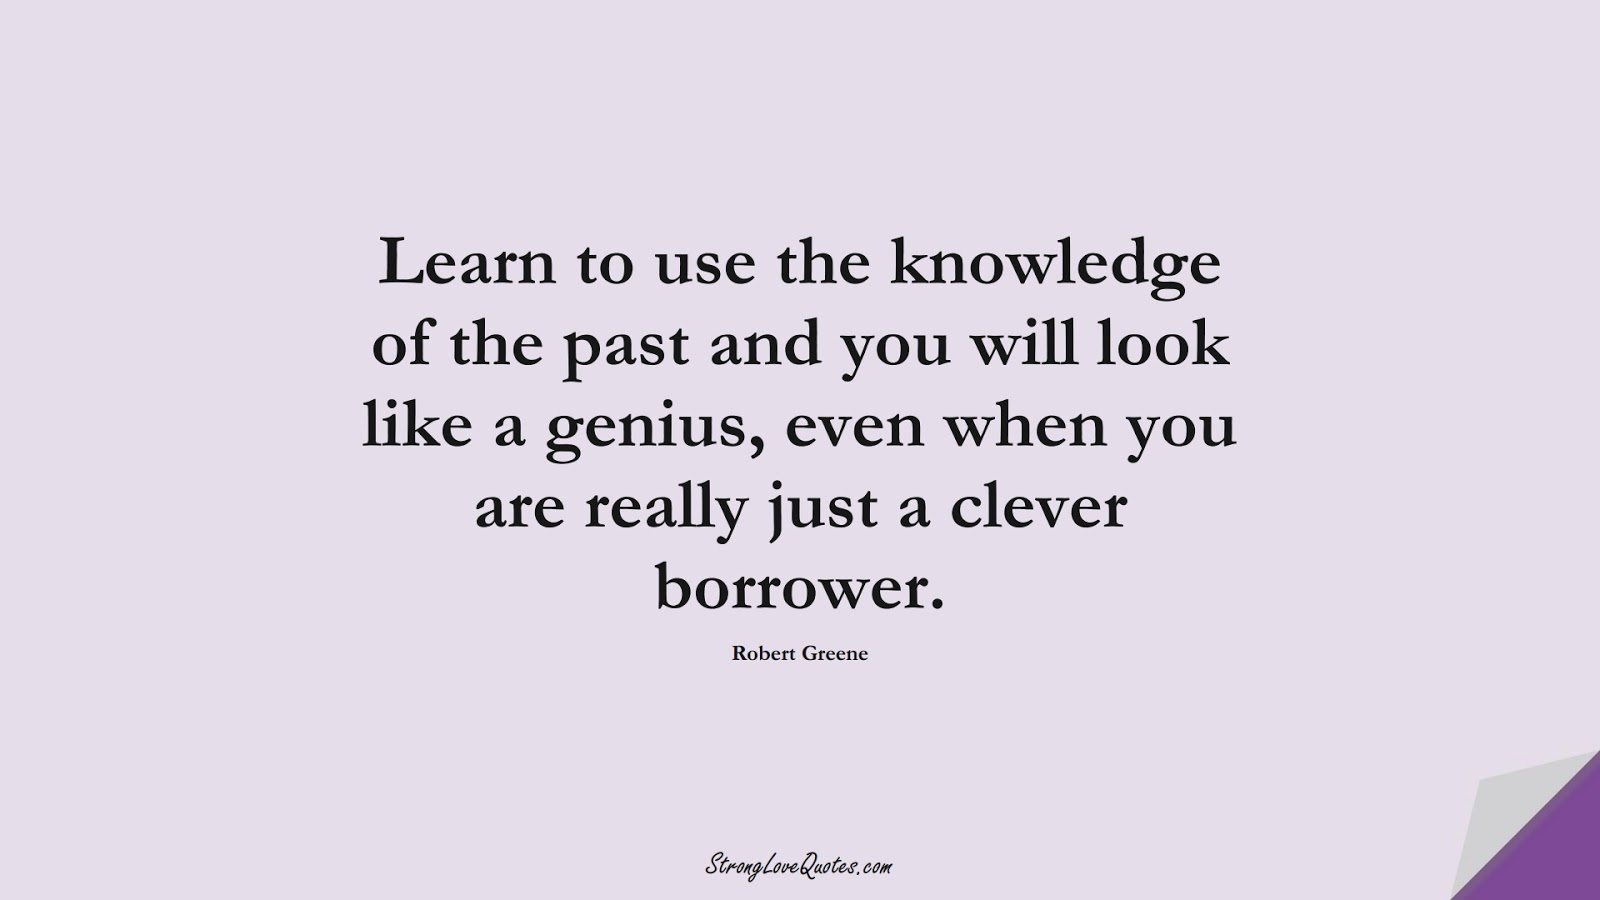 Learn to use the knowledge of the past and you will look like a genius, even when you are really just a clever borrower. (Robert Greene);  #LearningQuotes